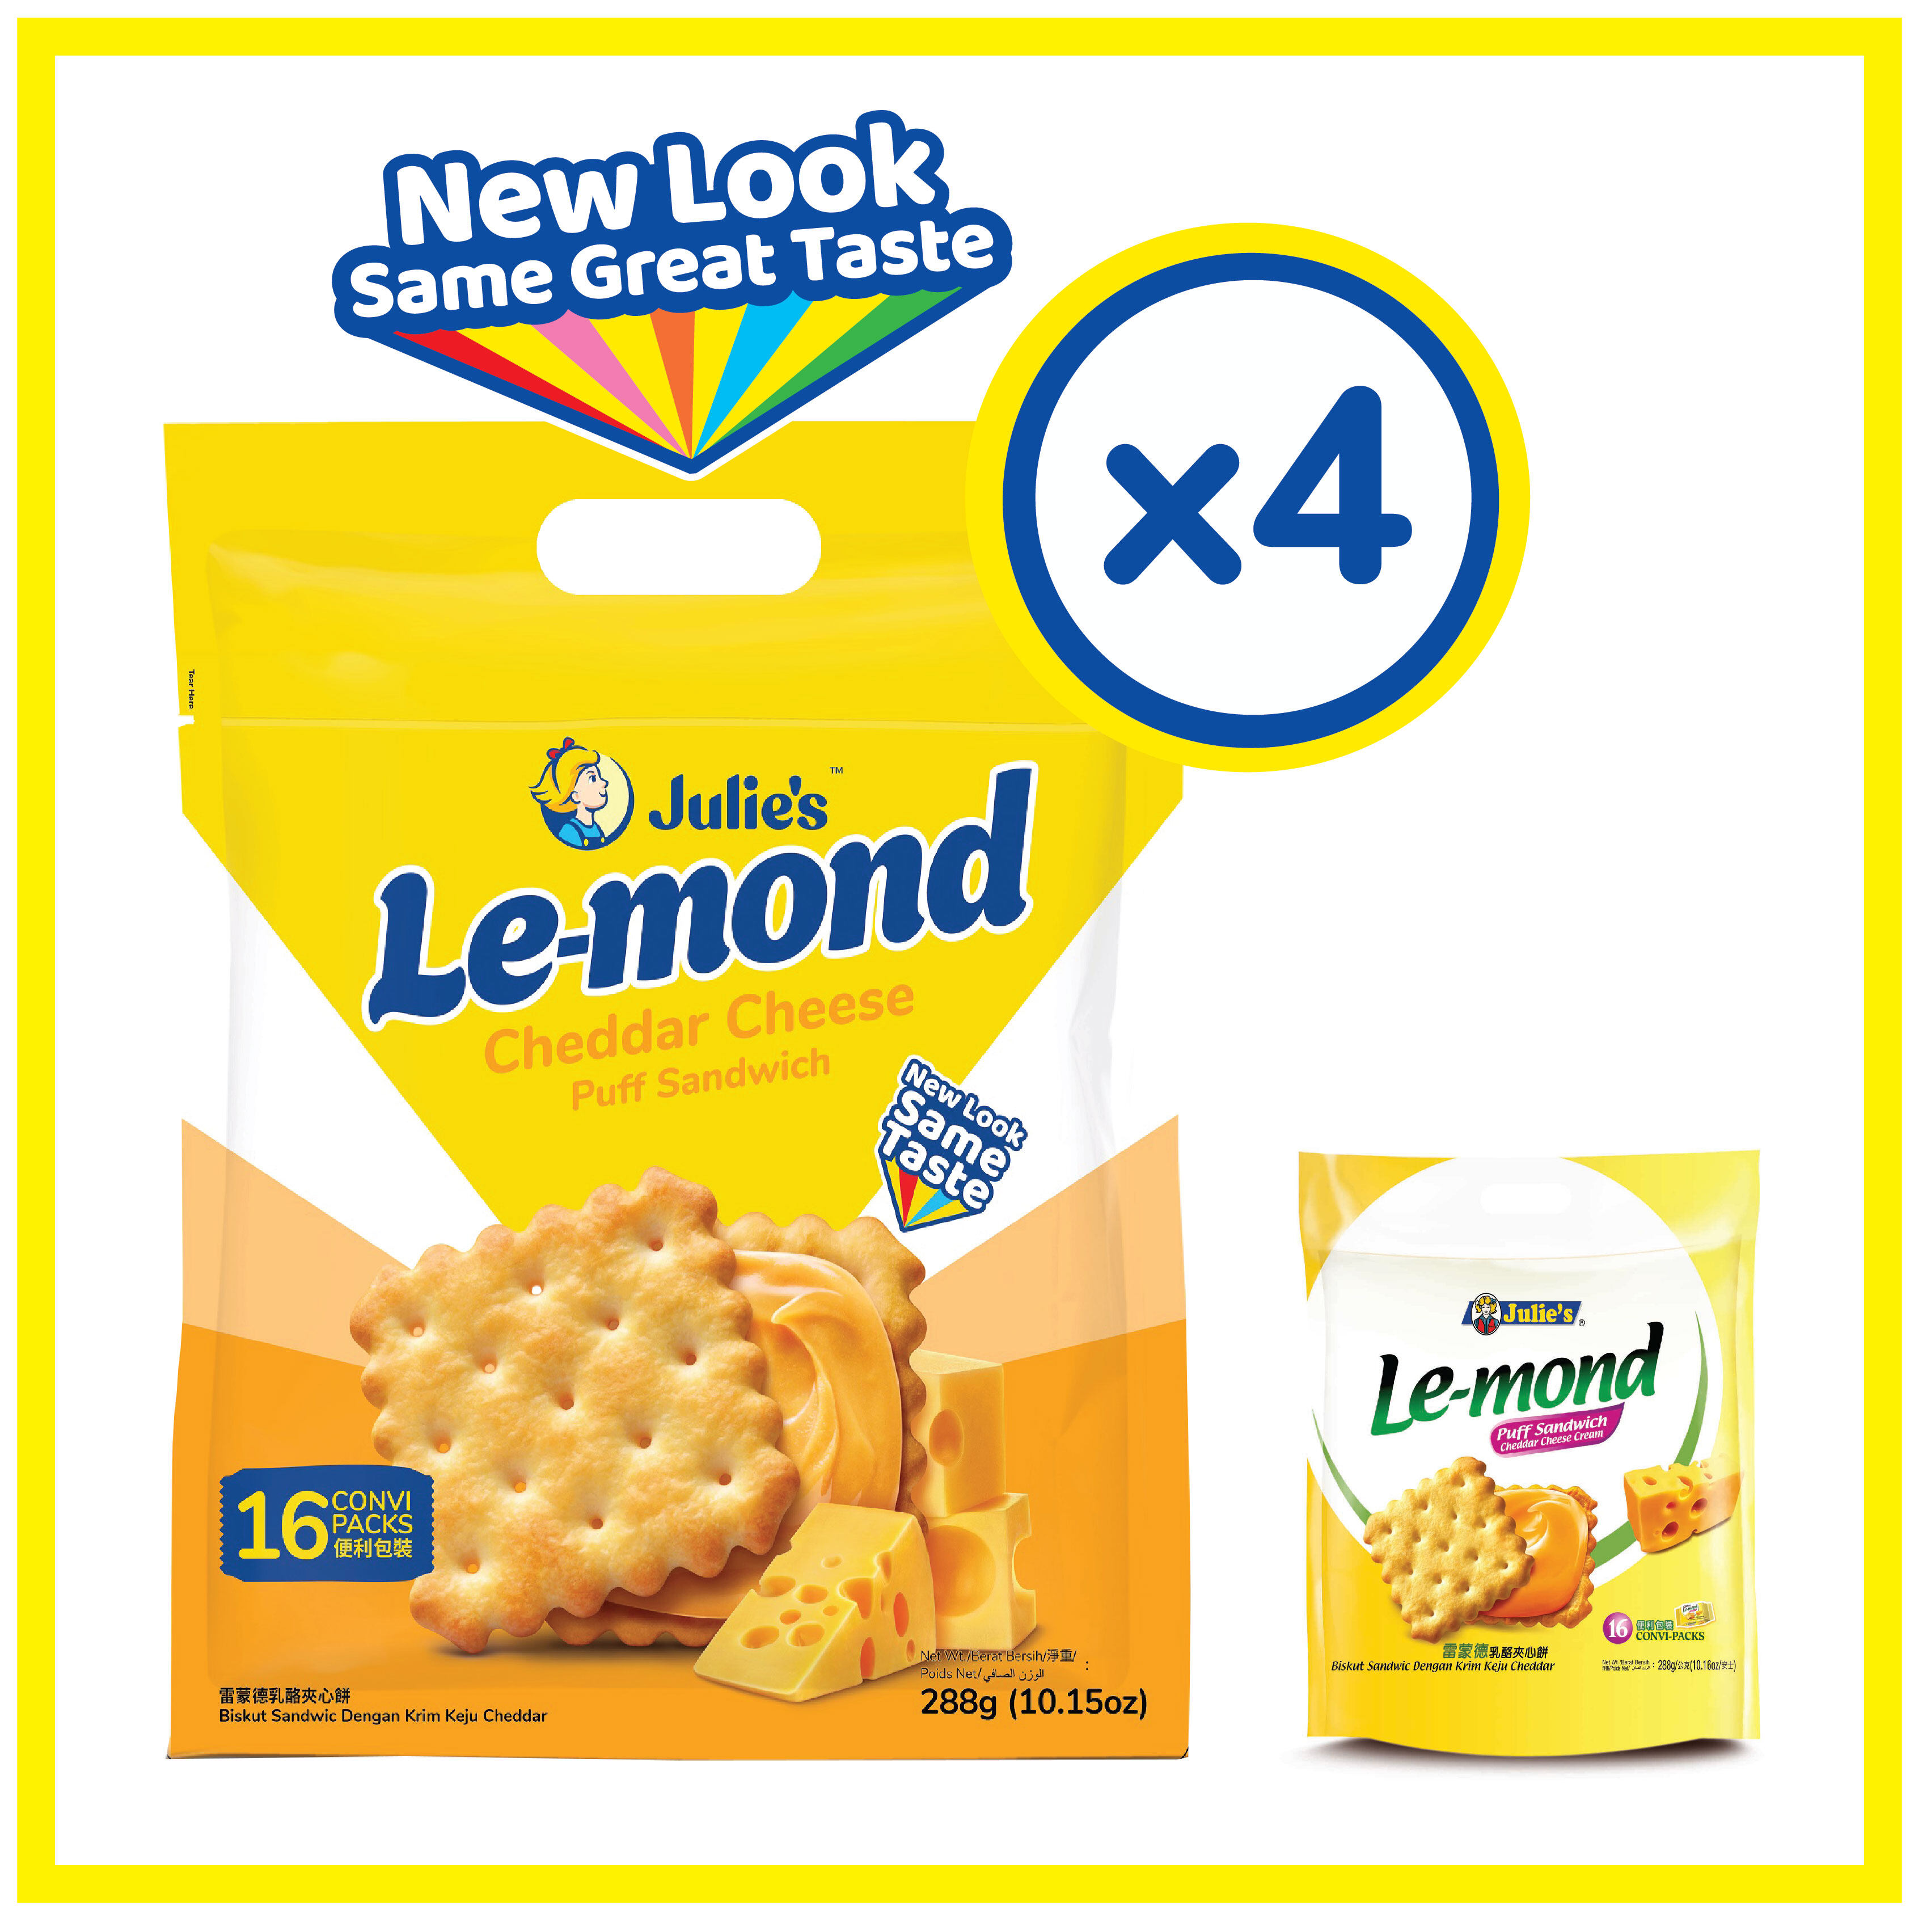 Julie's  Le-mond Cheddar Cheese 288g x 4 pack